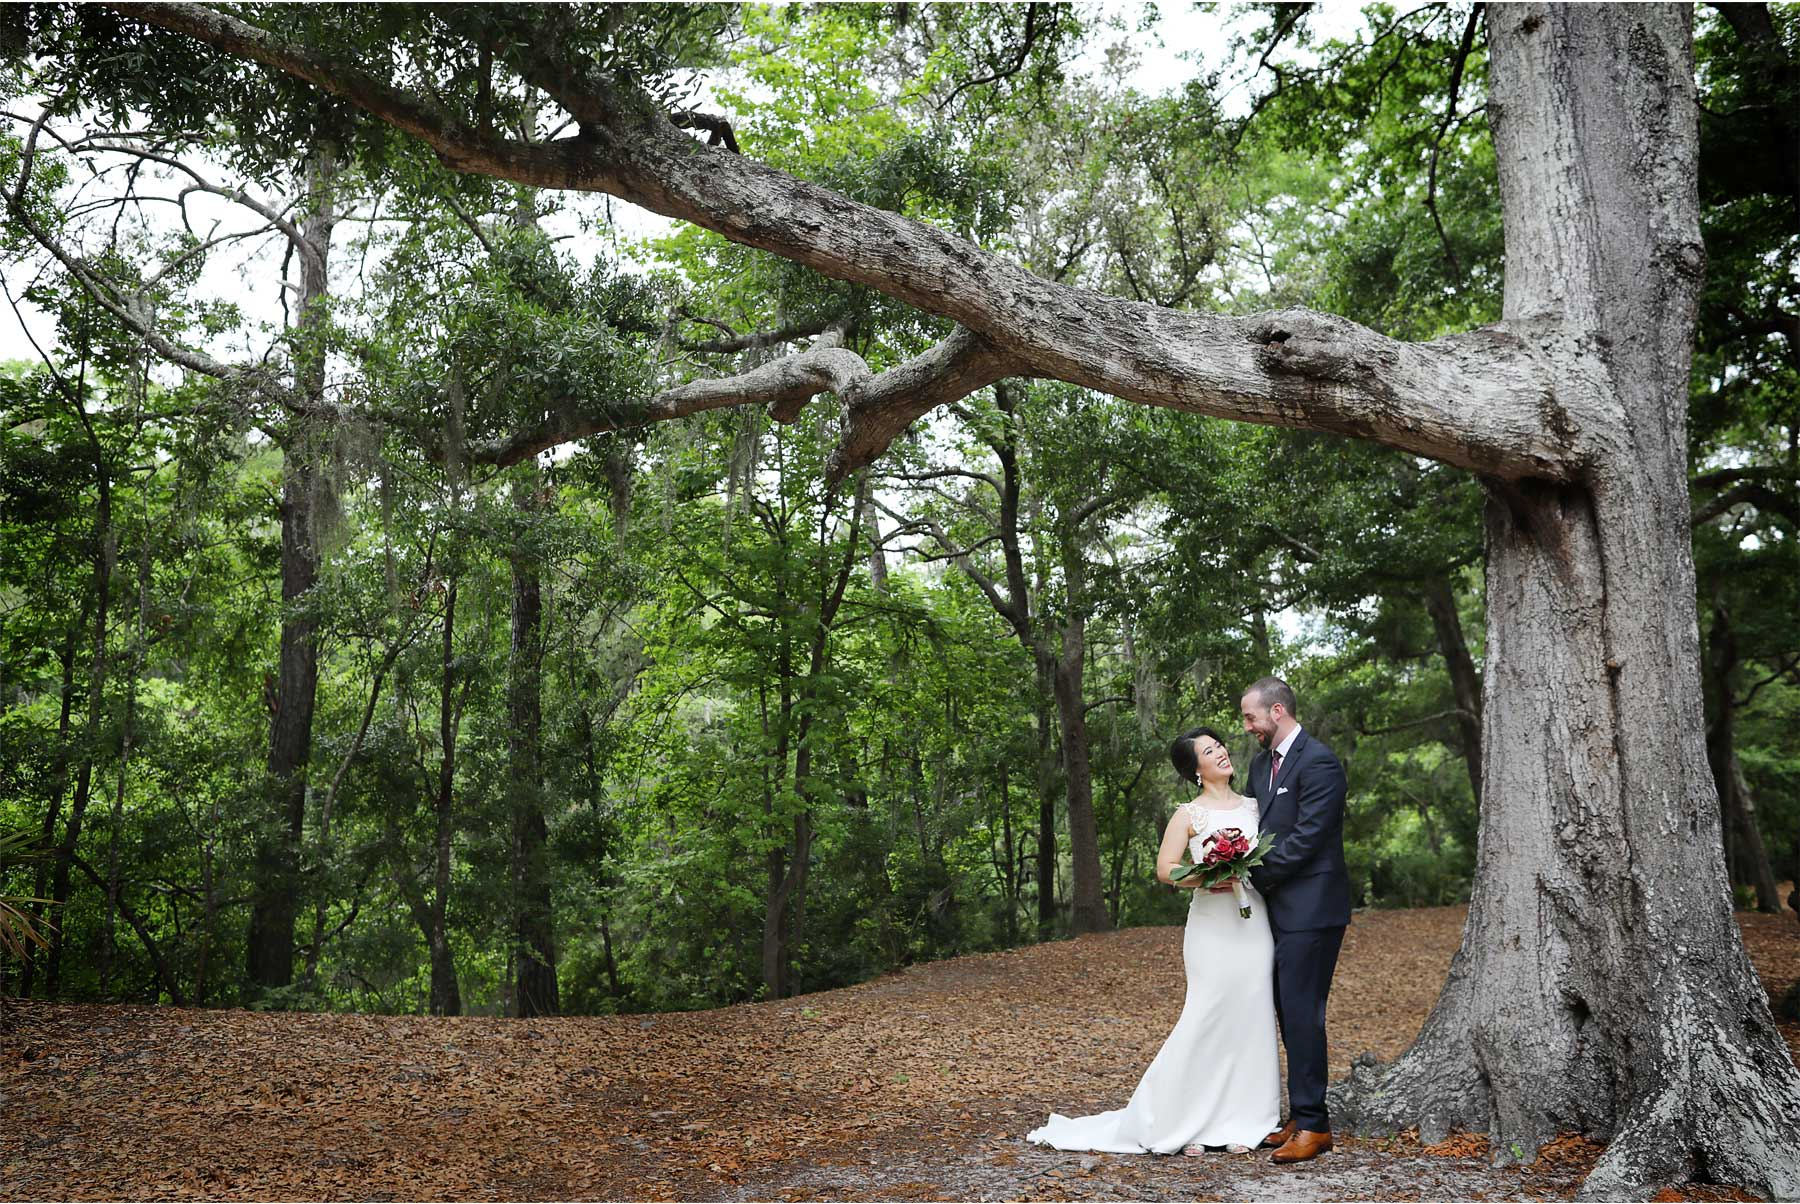 12-South-Carolina-Wedding-by-Vick-Photography-Hilton-Head-Island-Omni-Oceanfront-Hotel-Destination-Trees-Moss-Tropical-Felyn-and-Will.jpg